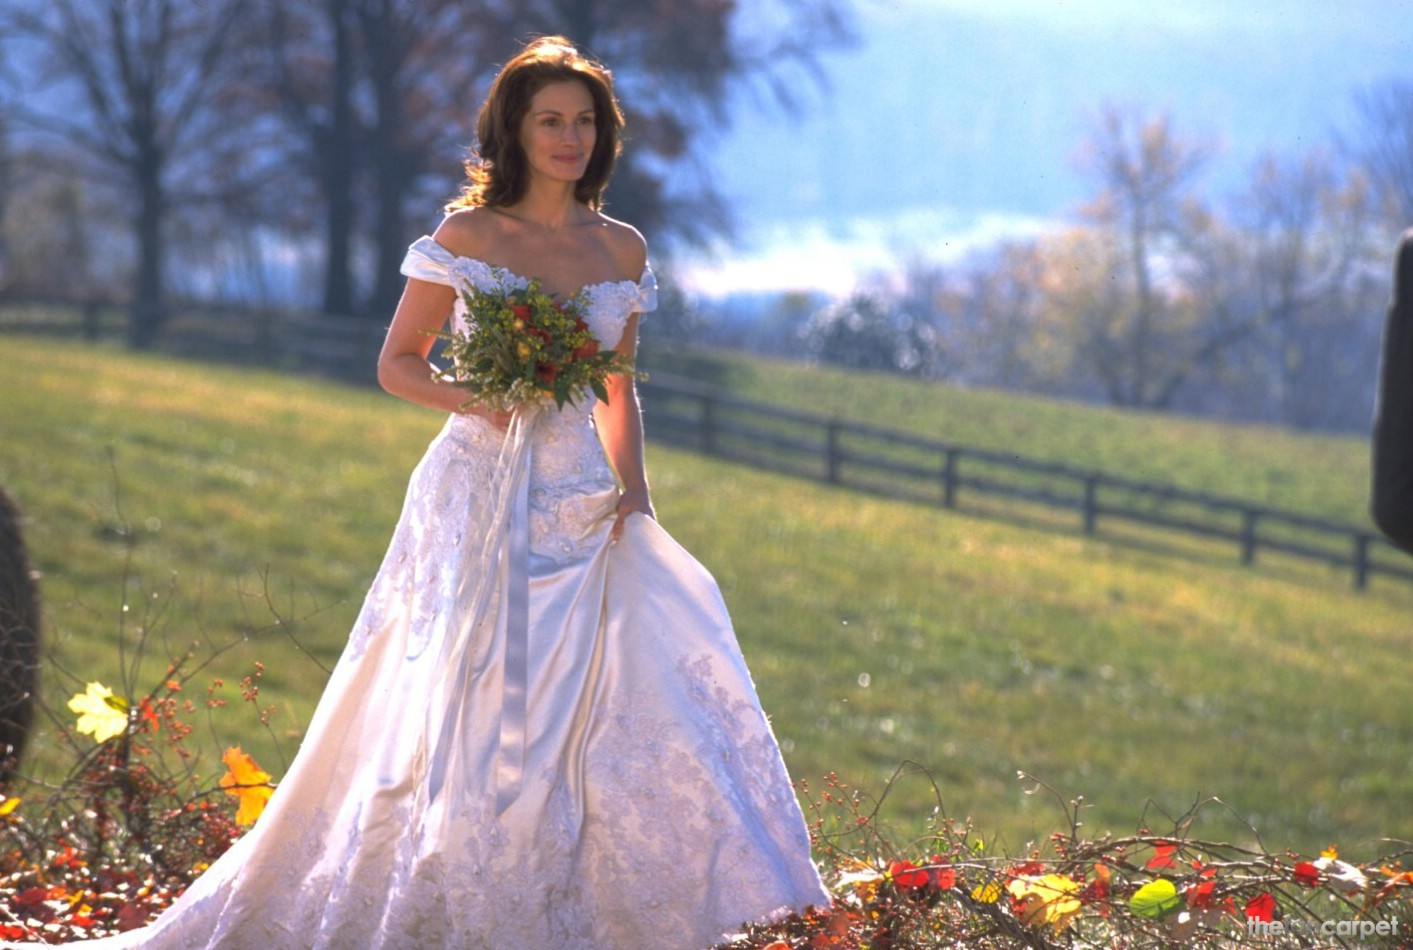 Runaway bride movie pictures